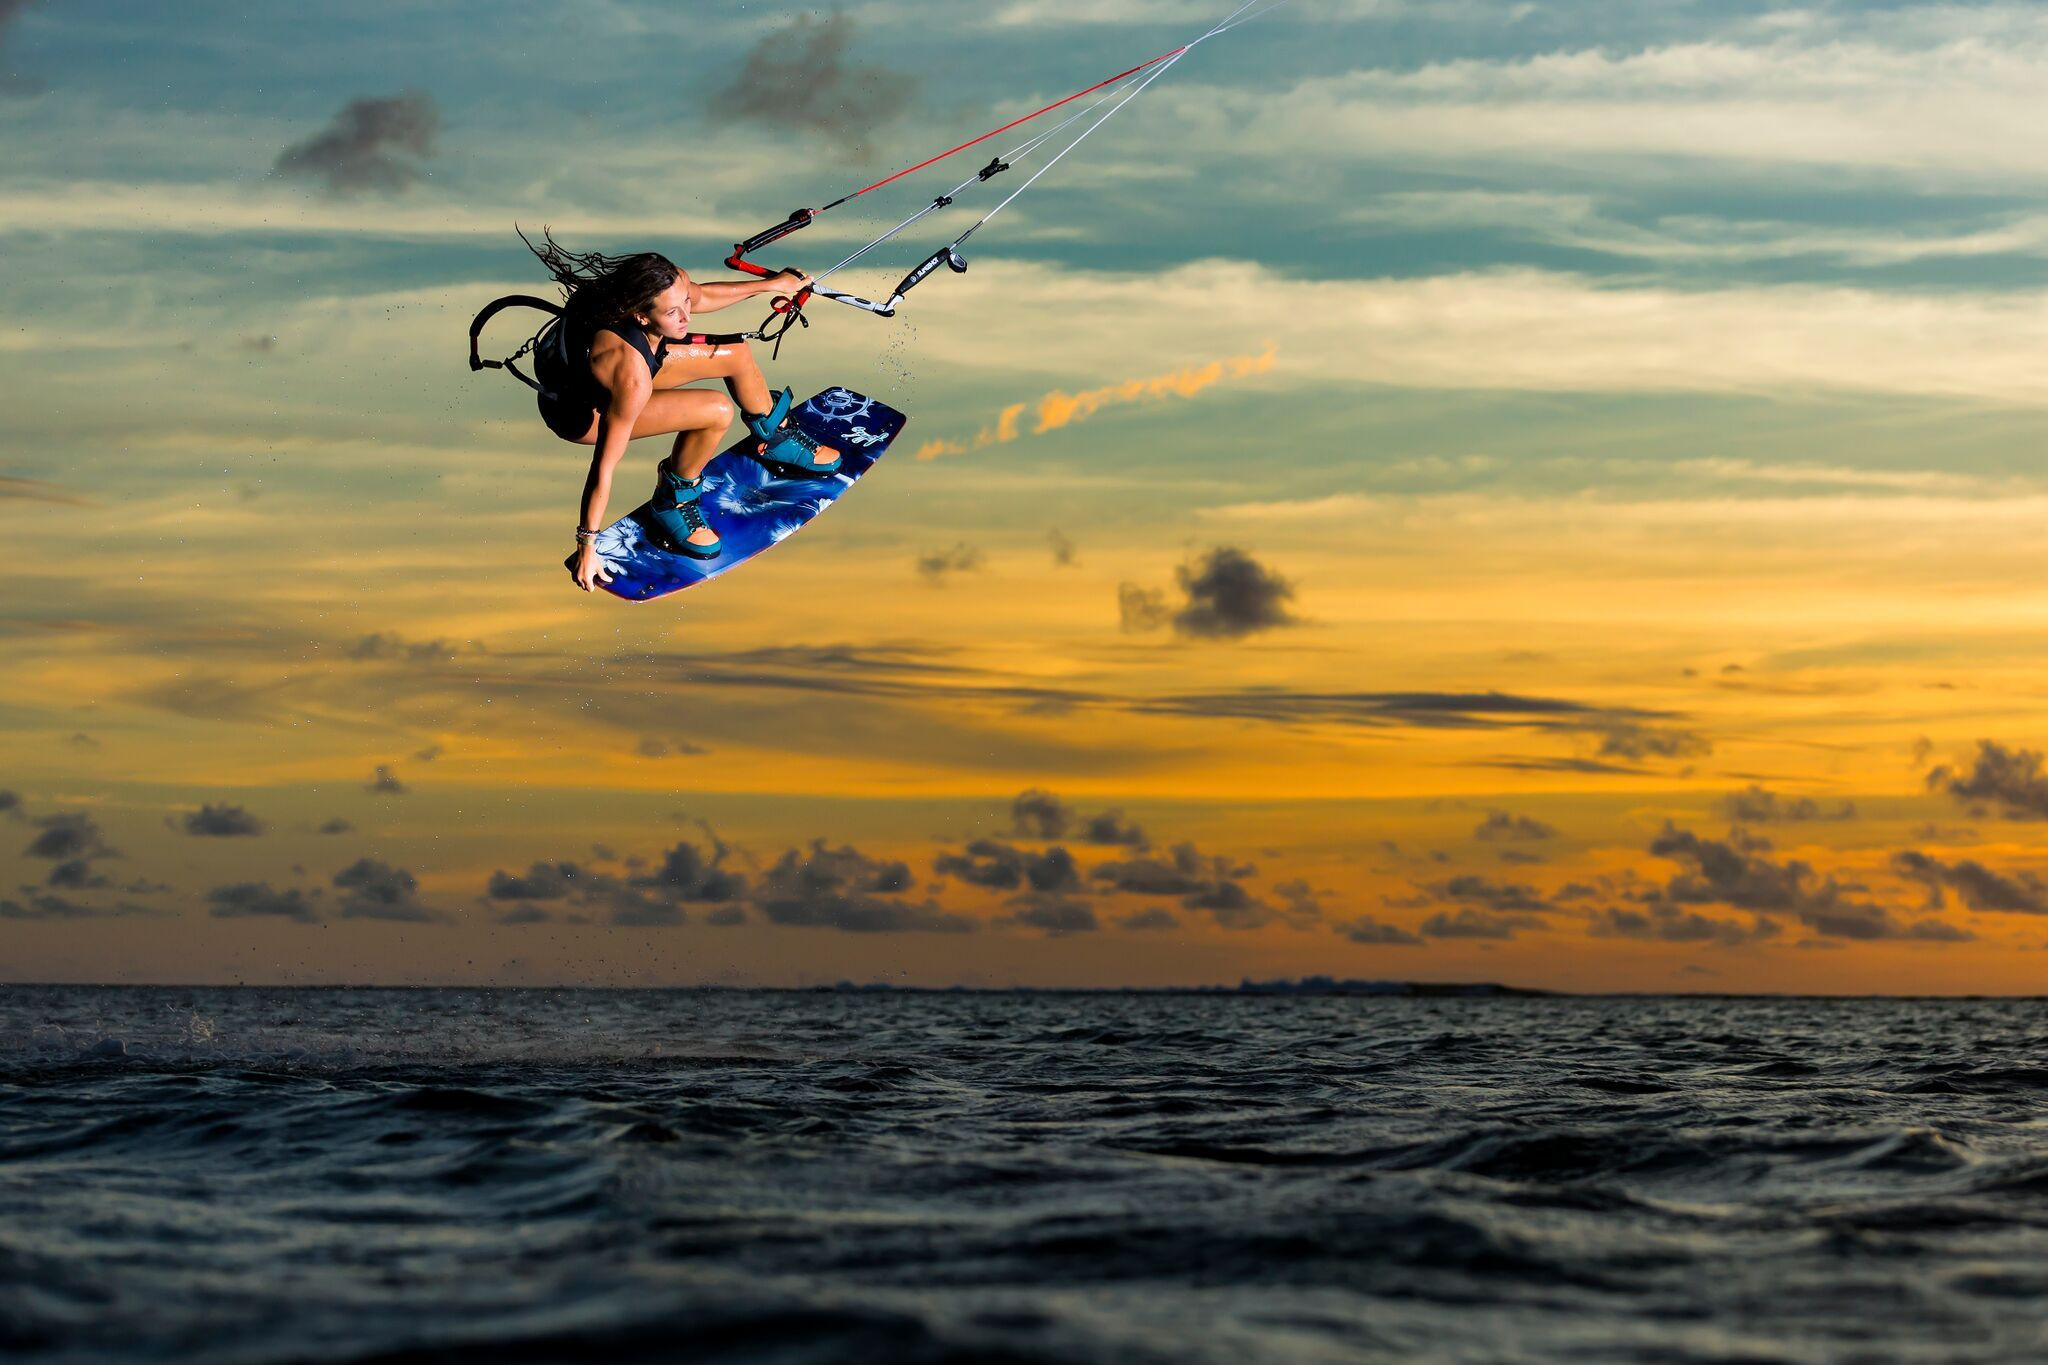 World Champion comes to Kite-Surfing Camp Maldives